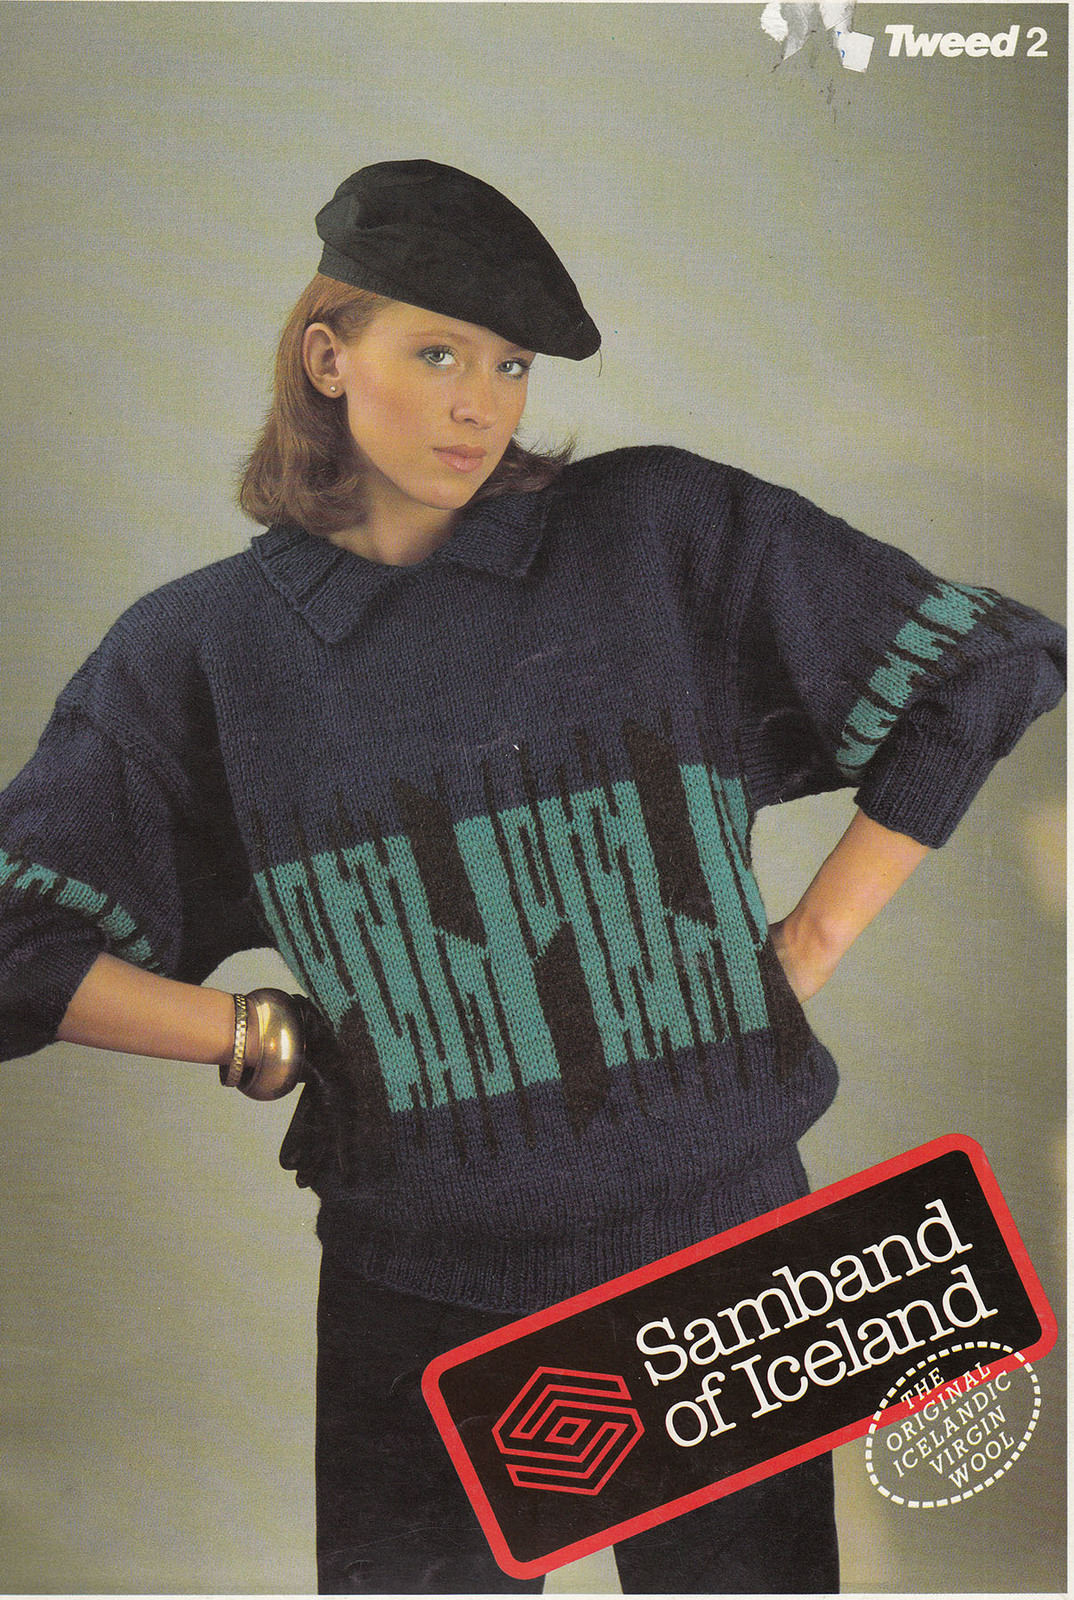 Primary image for KNITS SAMBAND OF ICELAND TWEED #2 MEN, WOMEN, BOYS & GIRLS 24 PAGES